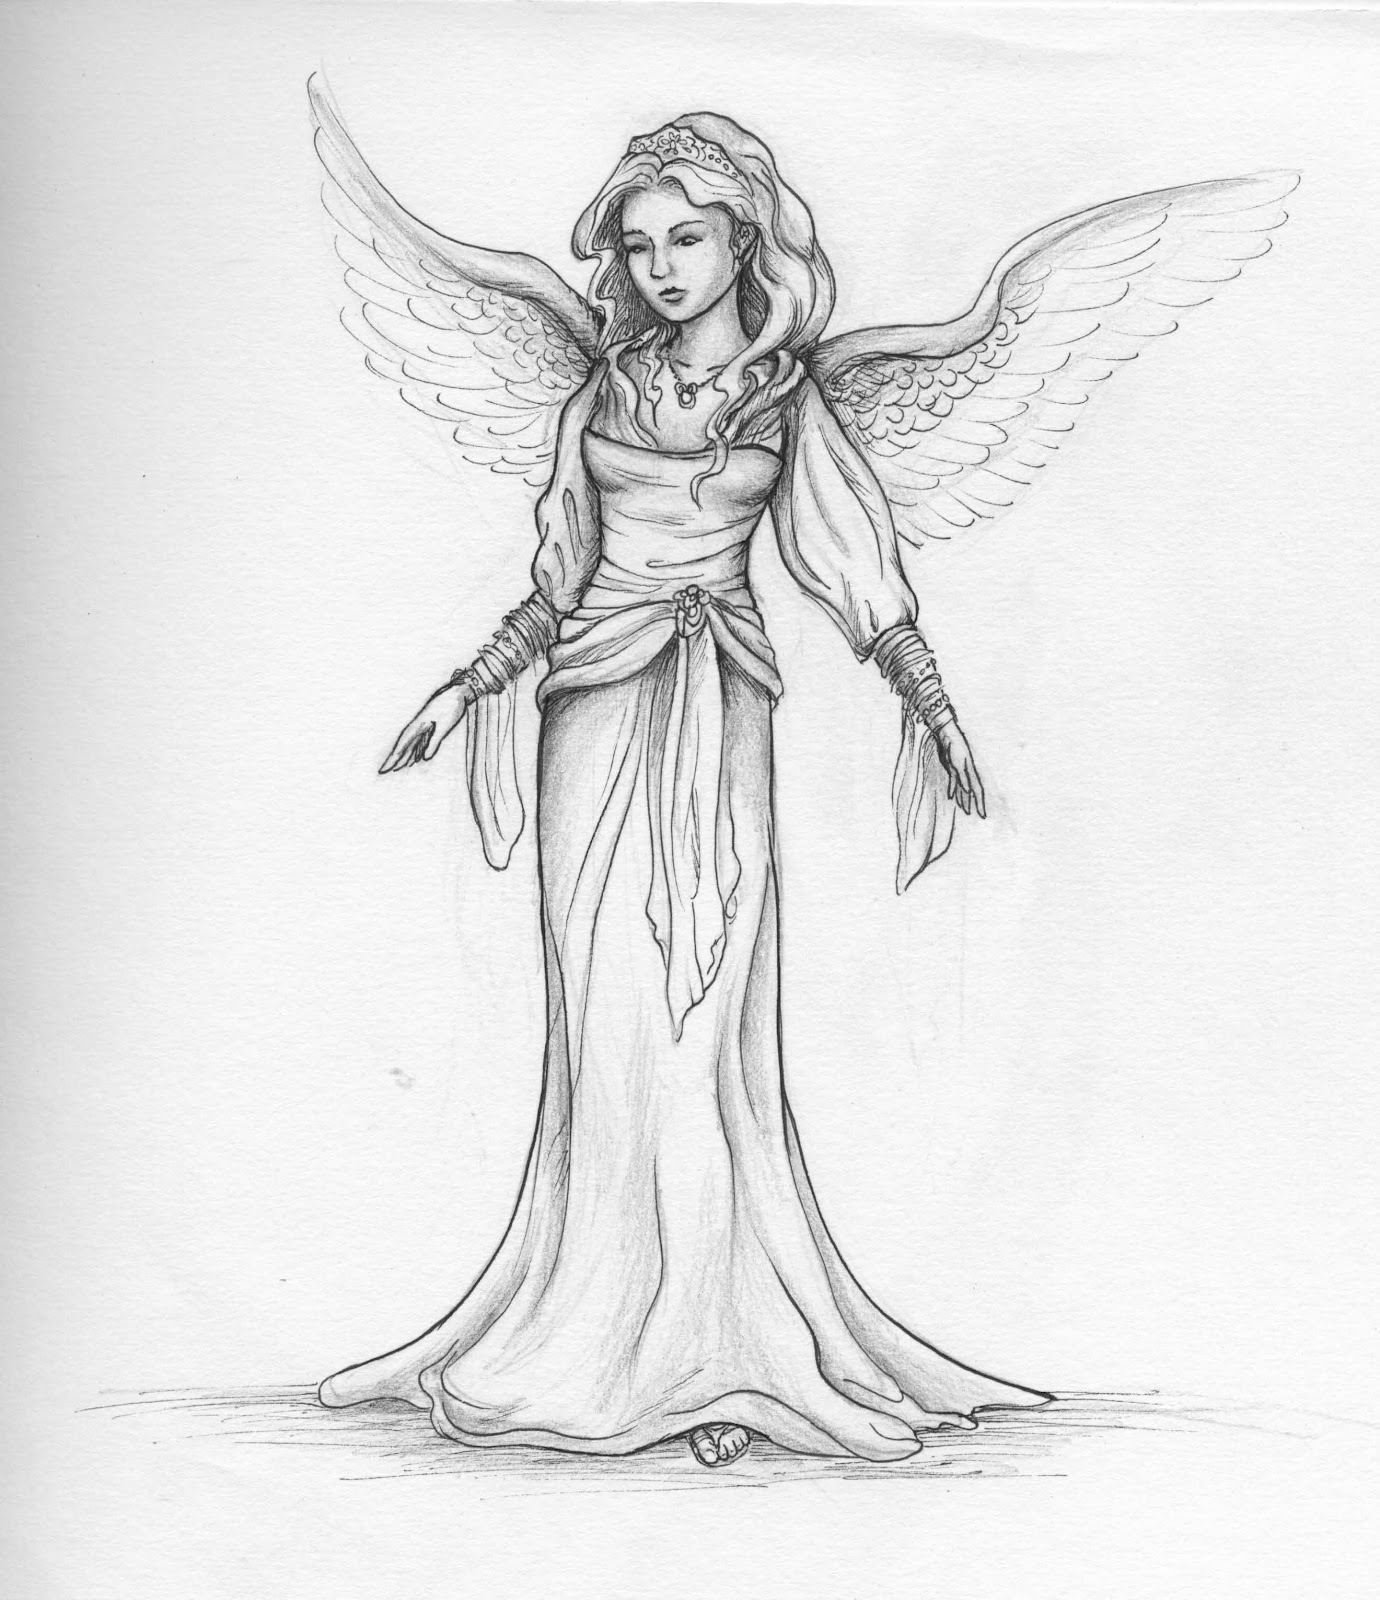 1380x1600 Pencil Sketches Angels Pencil Drawings Pencil Drawings